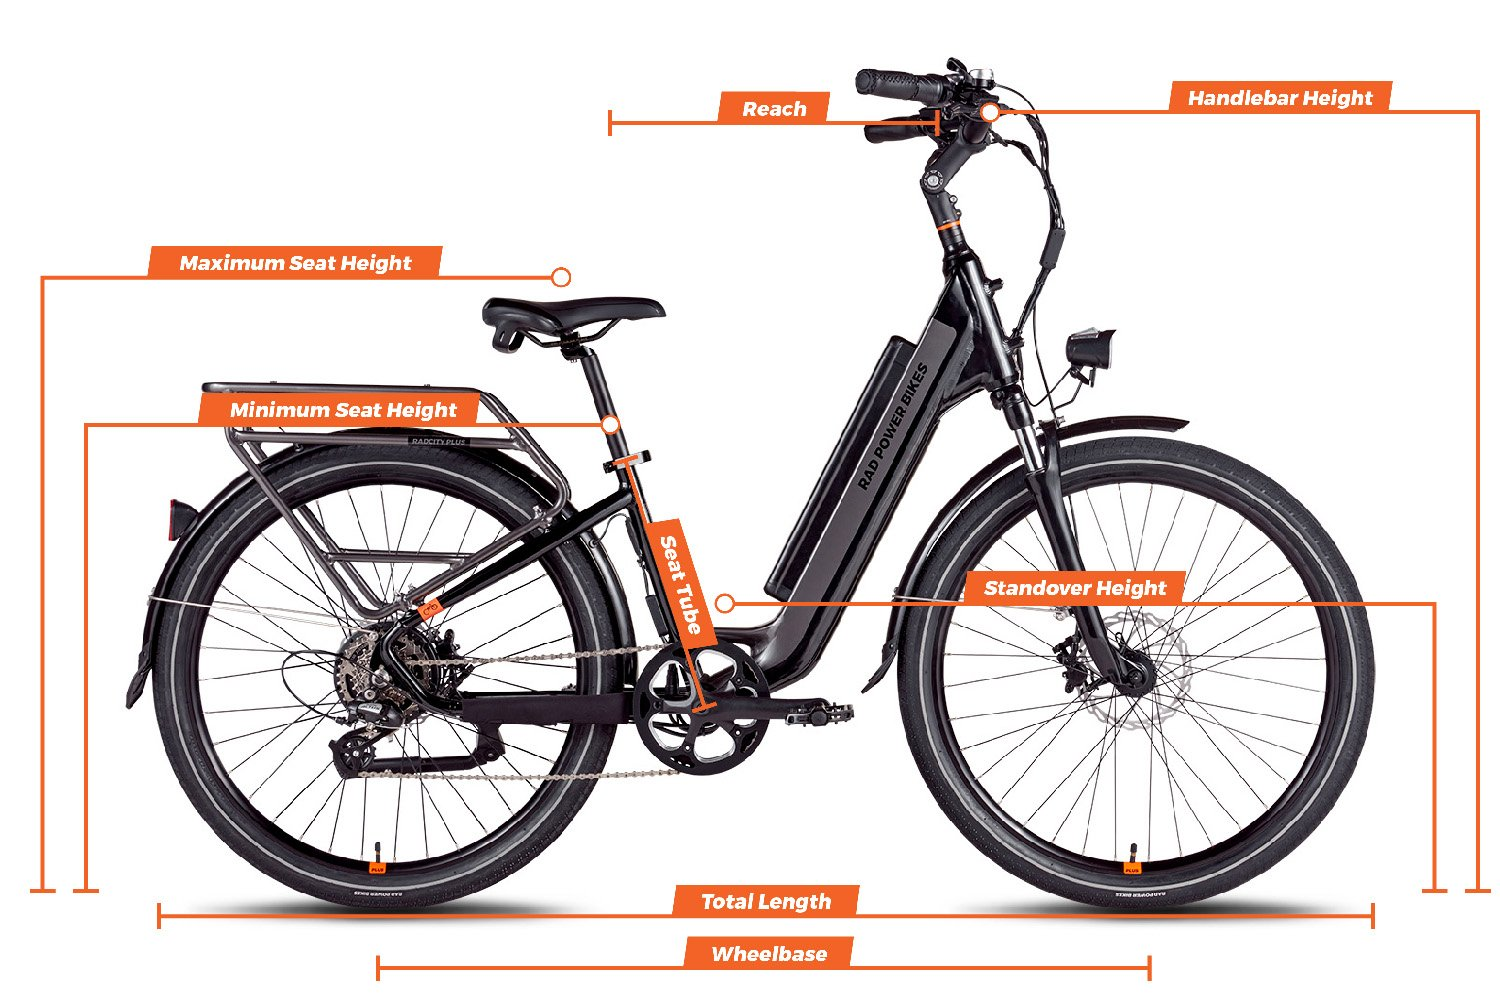 Geometry chart for the RadCity 5 Plus Step-Thru Electric Commuter Bike